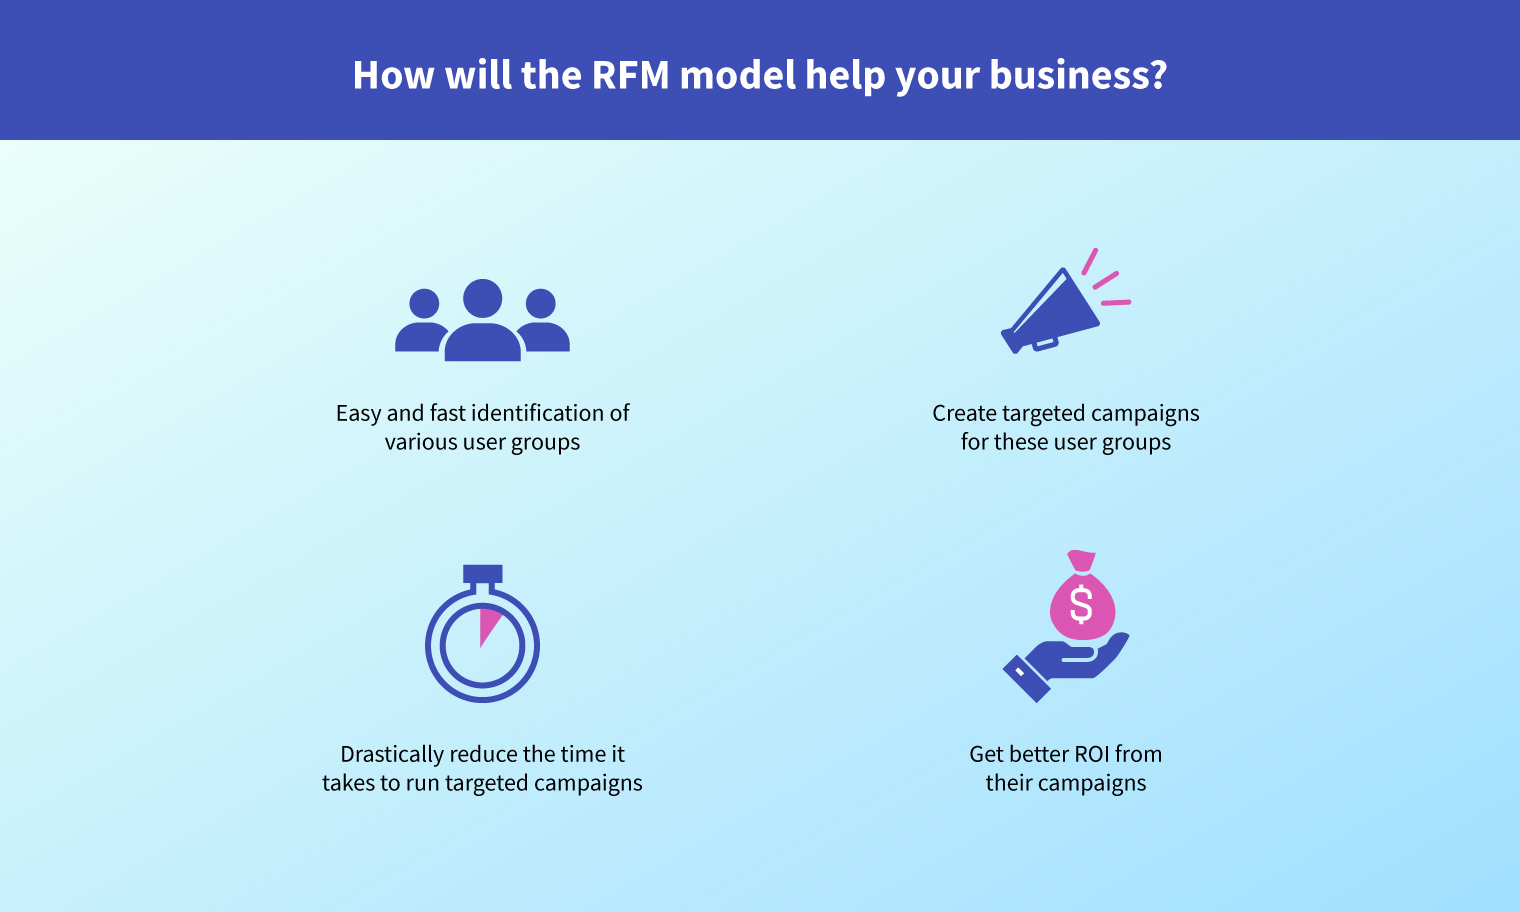 RFM Analysis - Easily Identify User Segments To Run Targeted Campaigns